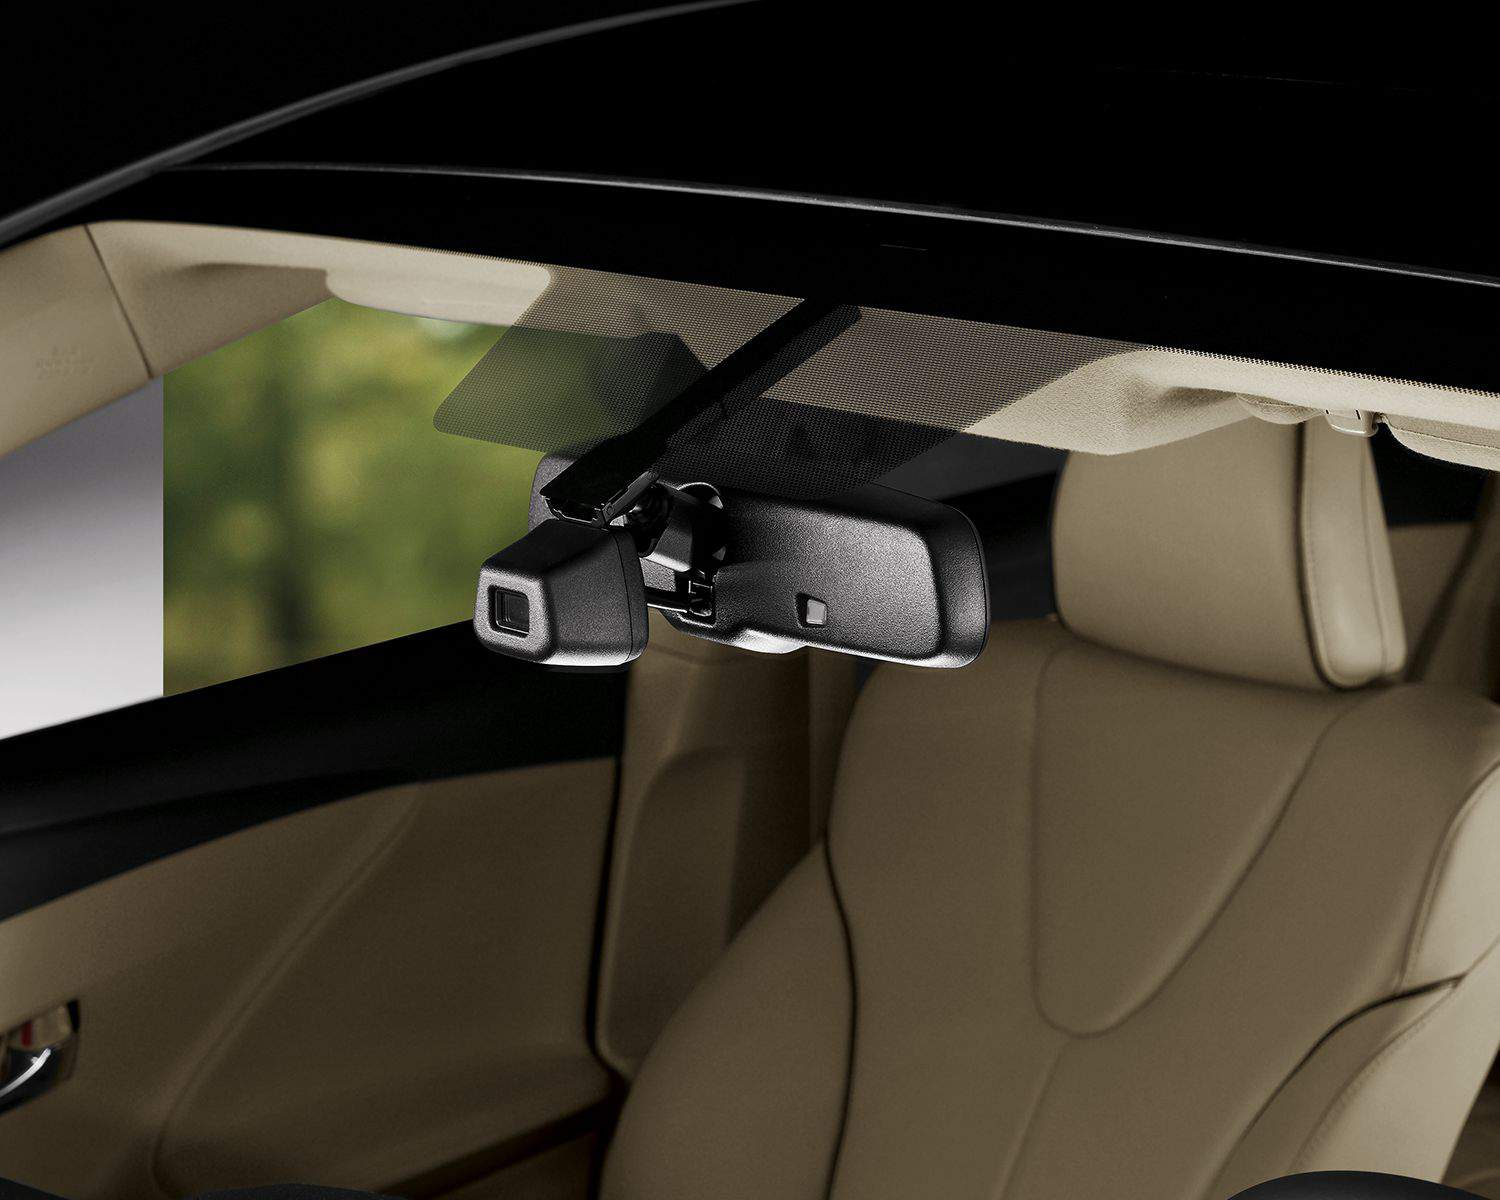 Venza's Auto-Dimming Rear View Mirror with Compass